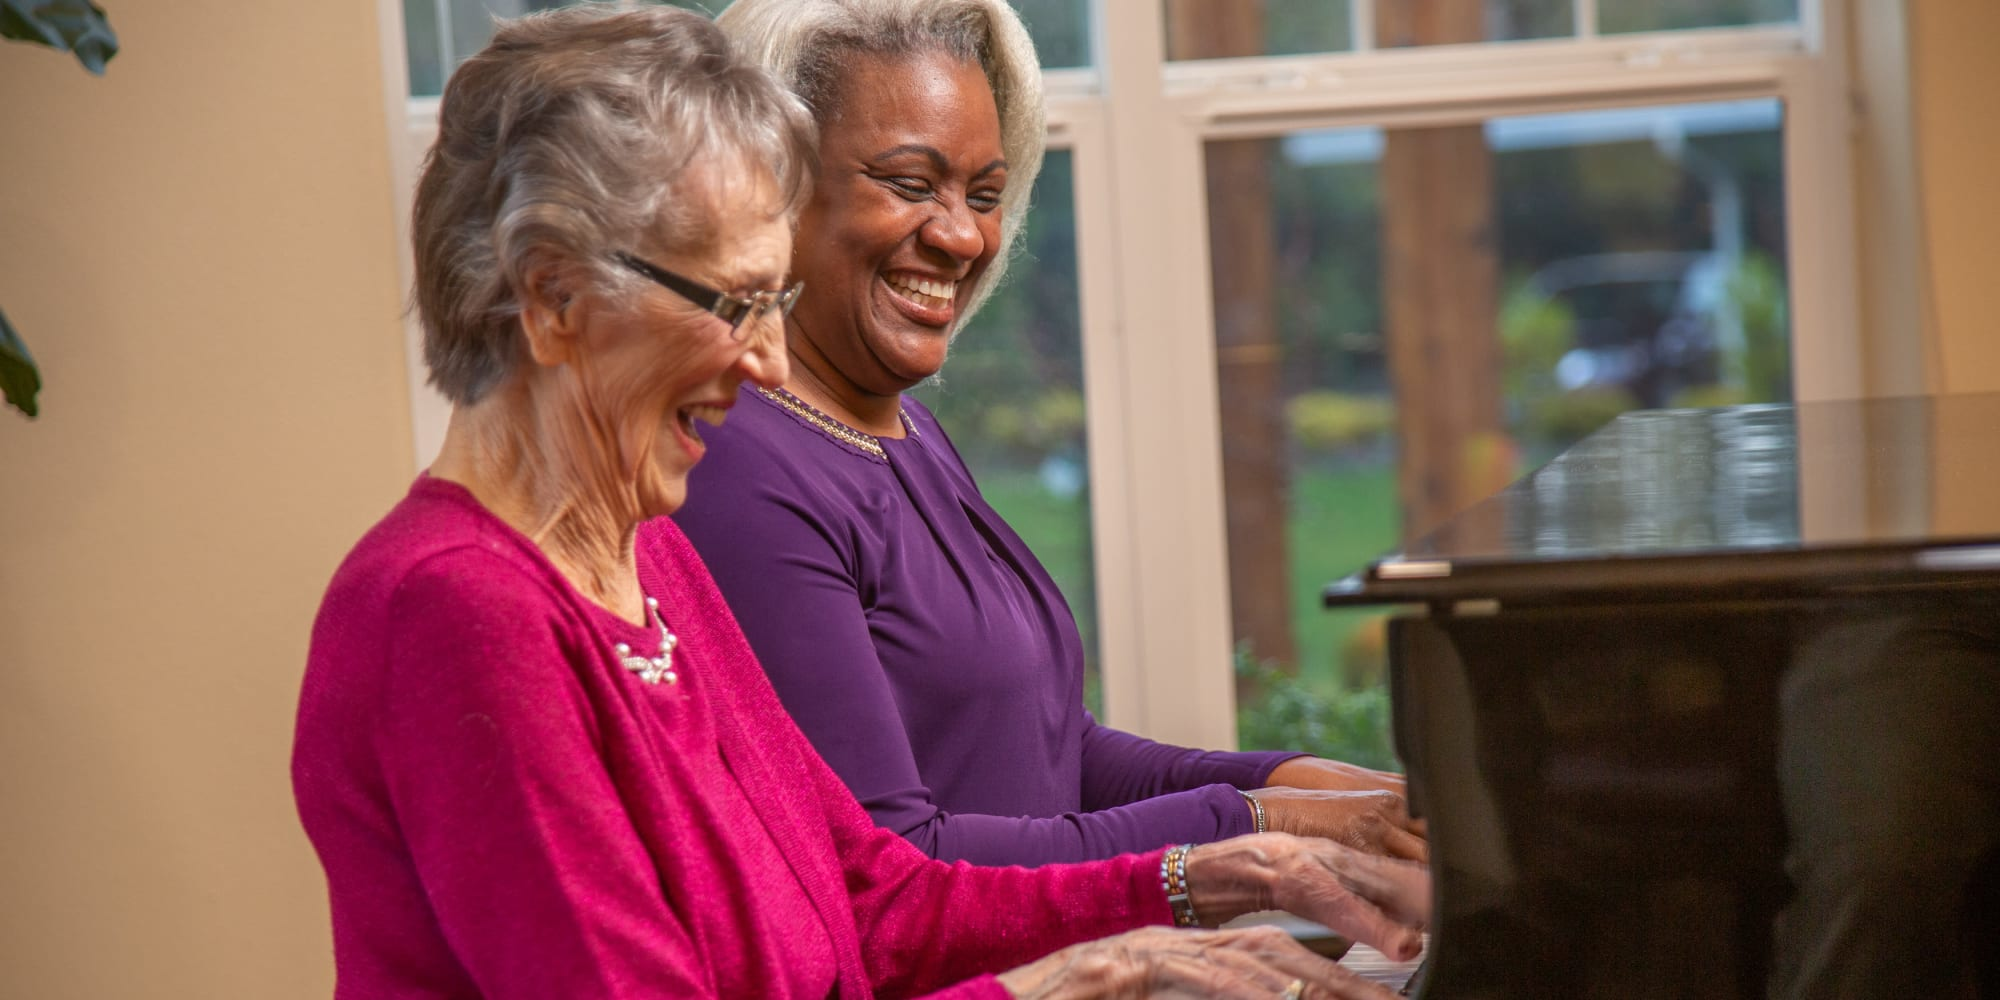 Residents of Hessler Heights Gracious Retirement Living in Leesburg, Virginia playing a piano